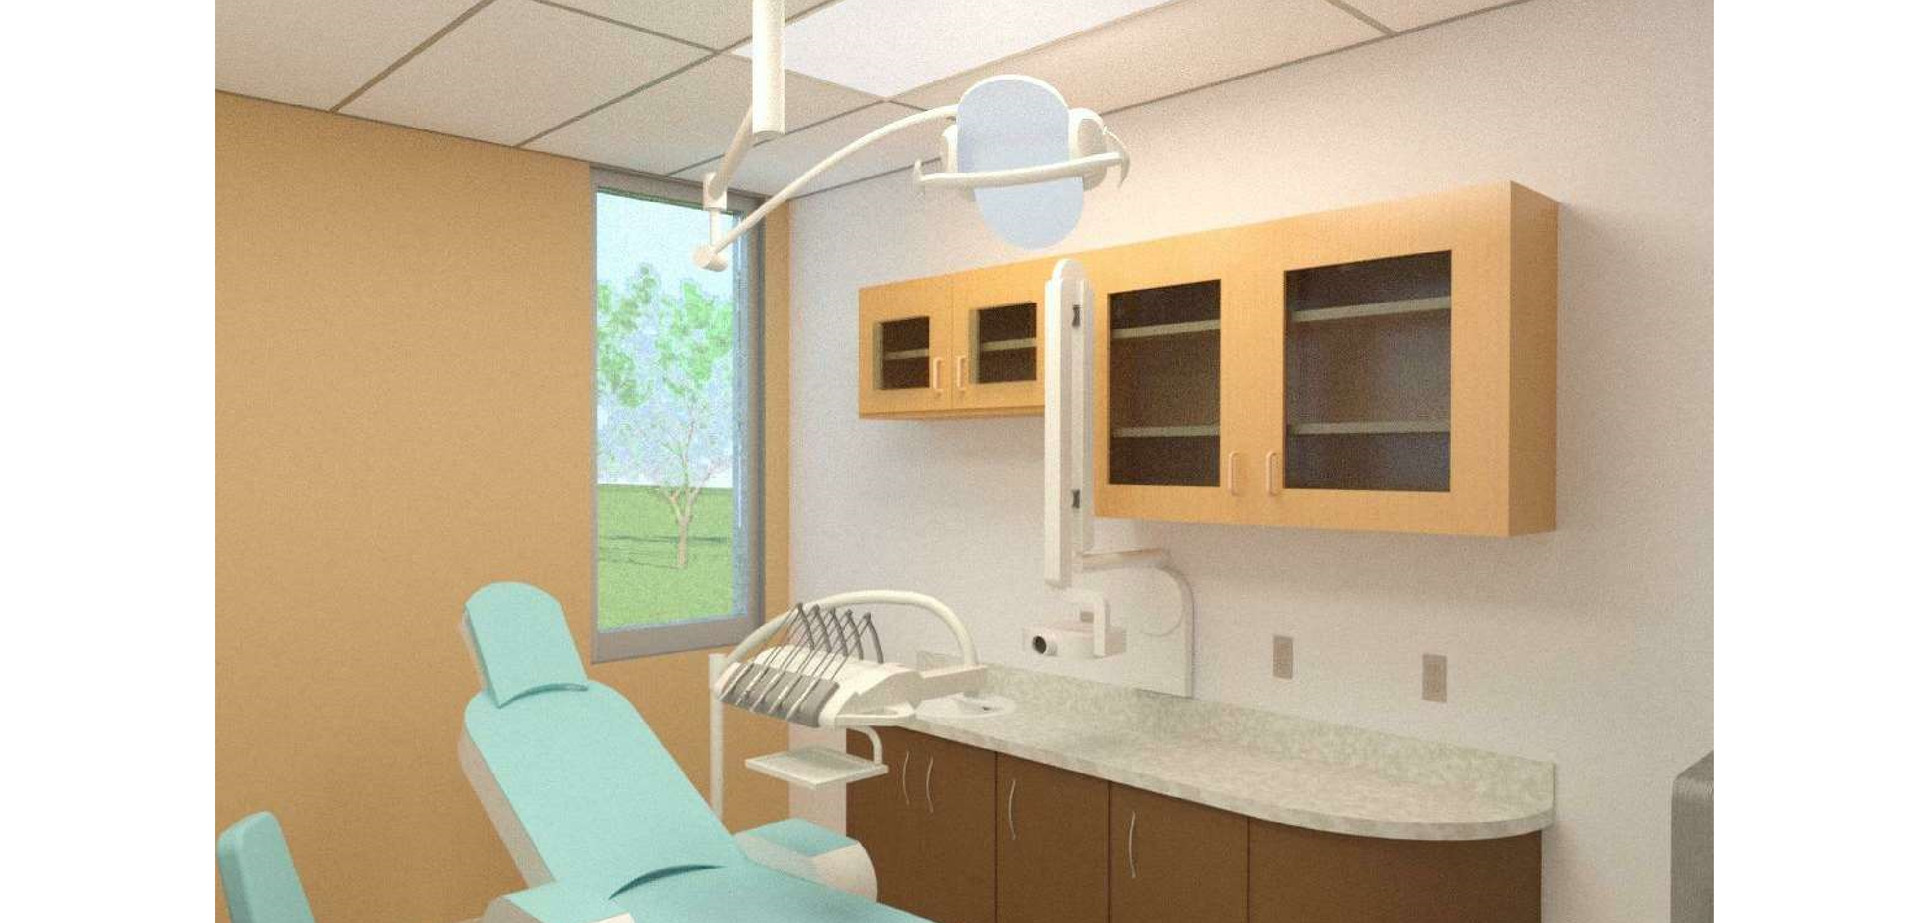 Hudson Headwaters Health Network - Dental Services